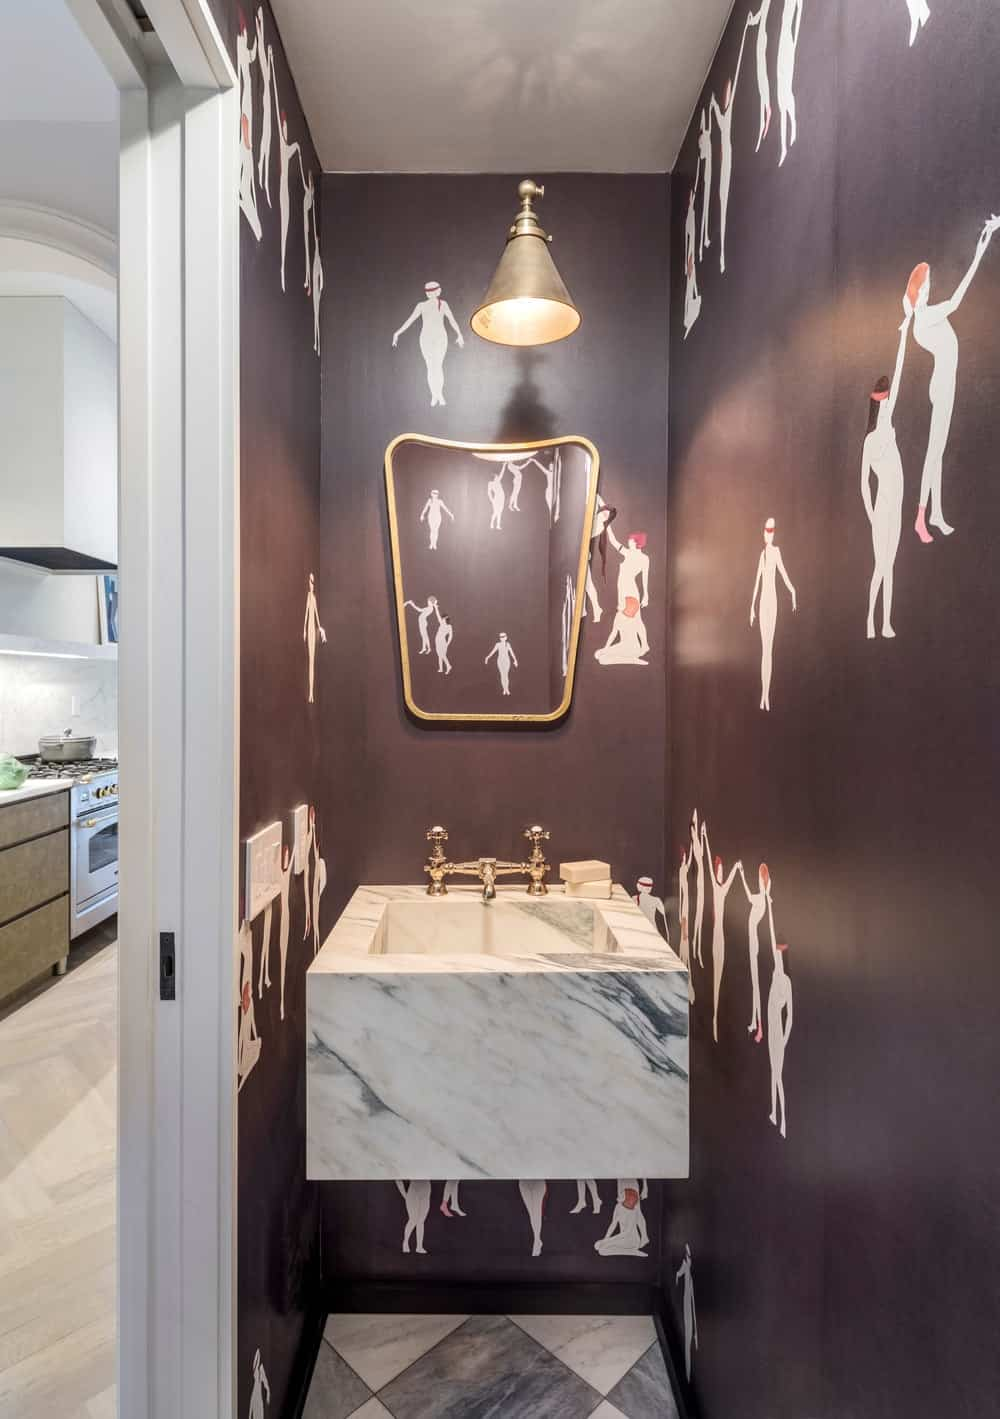 This is the small powder room with a floating white marble sink surrounded by a dark patterned wallpaper.